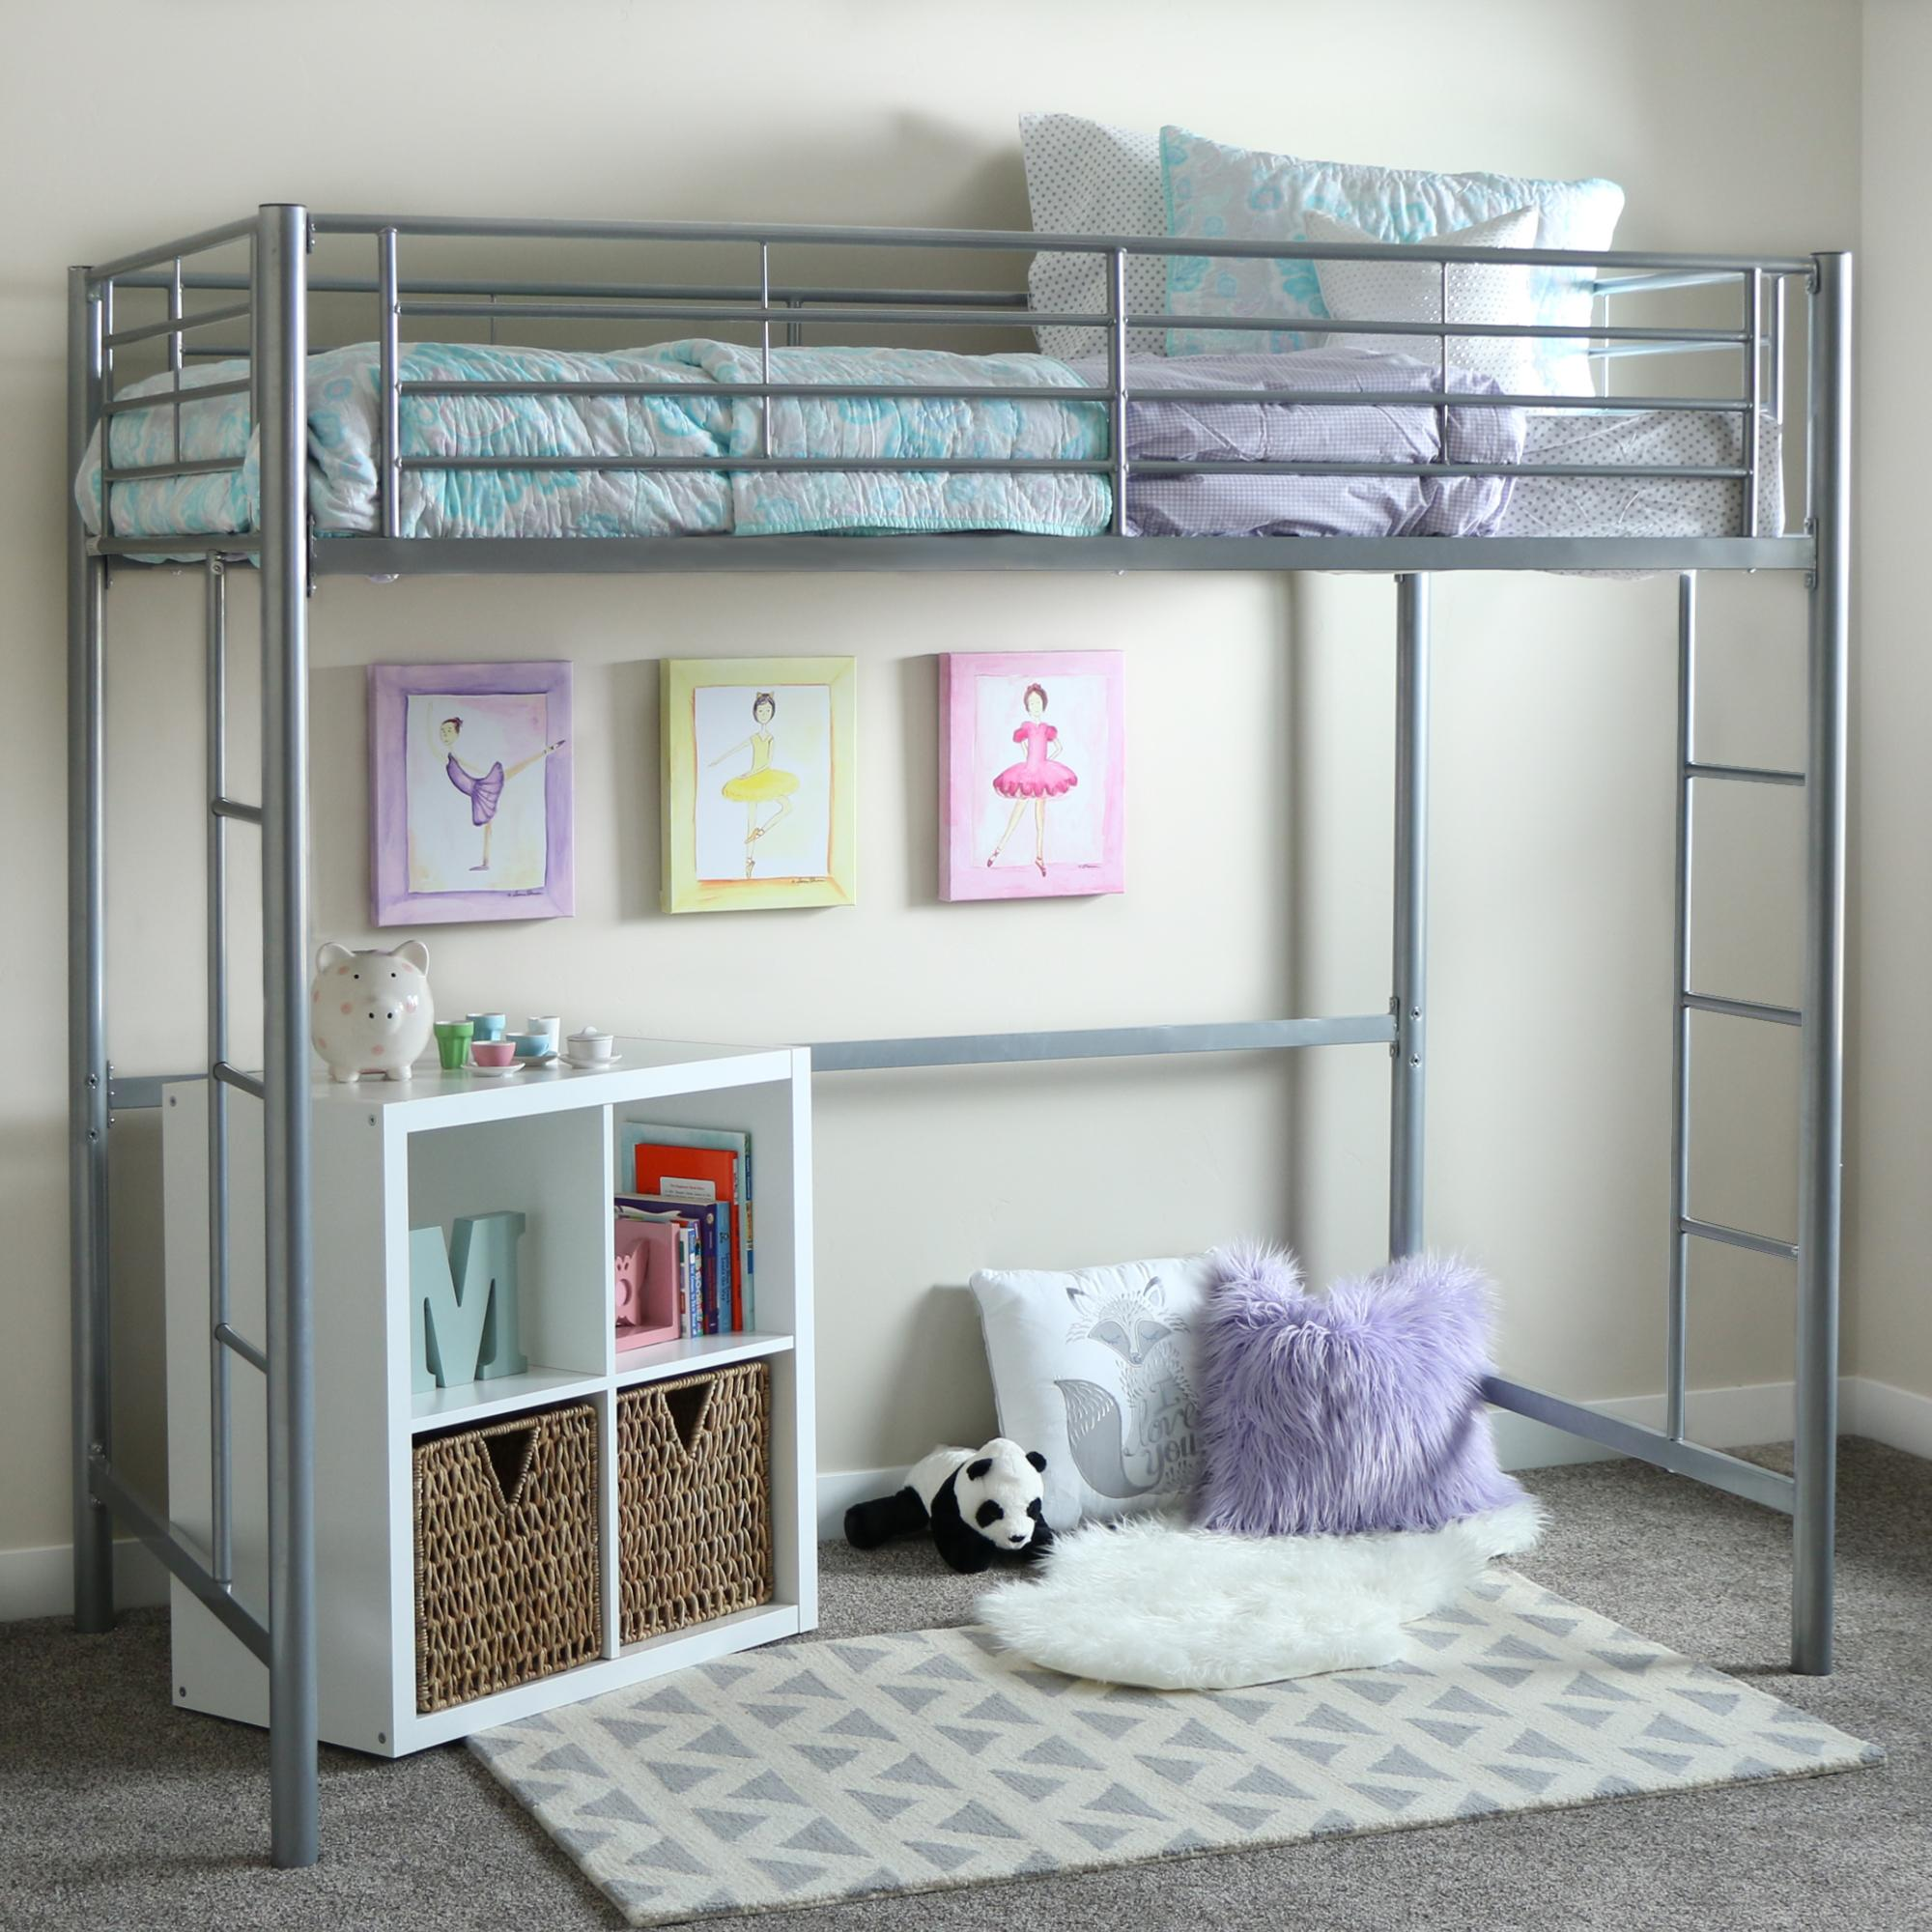 Jay furniture stair loft bed in cherry with desk kids black finish - View Larger This Lofted Bunk Bed